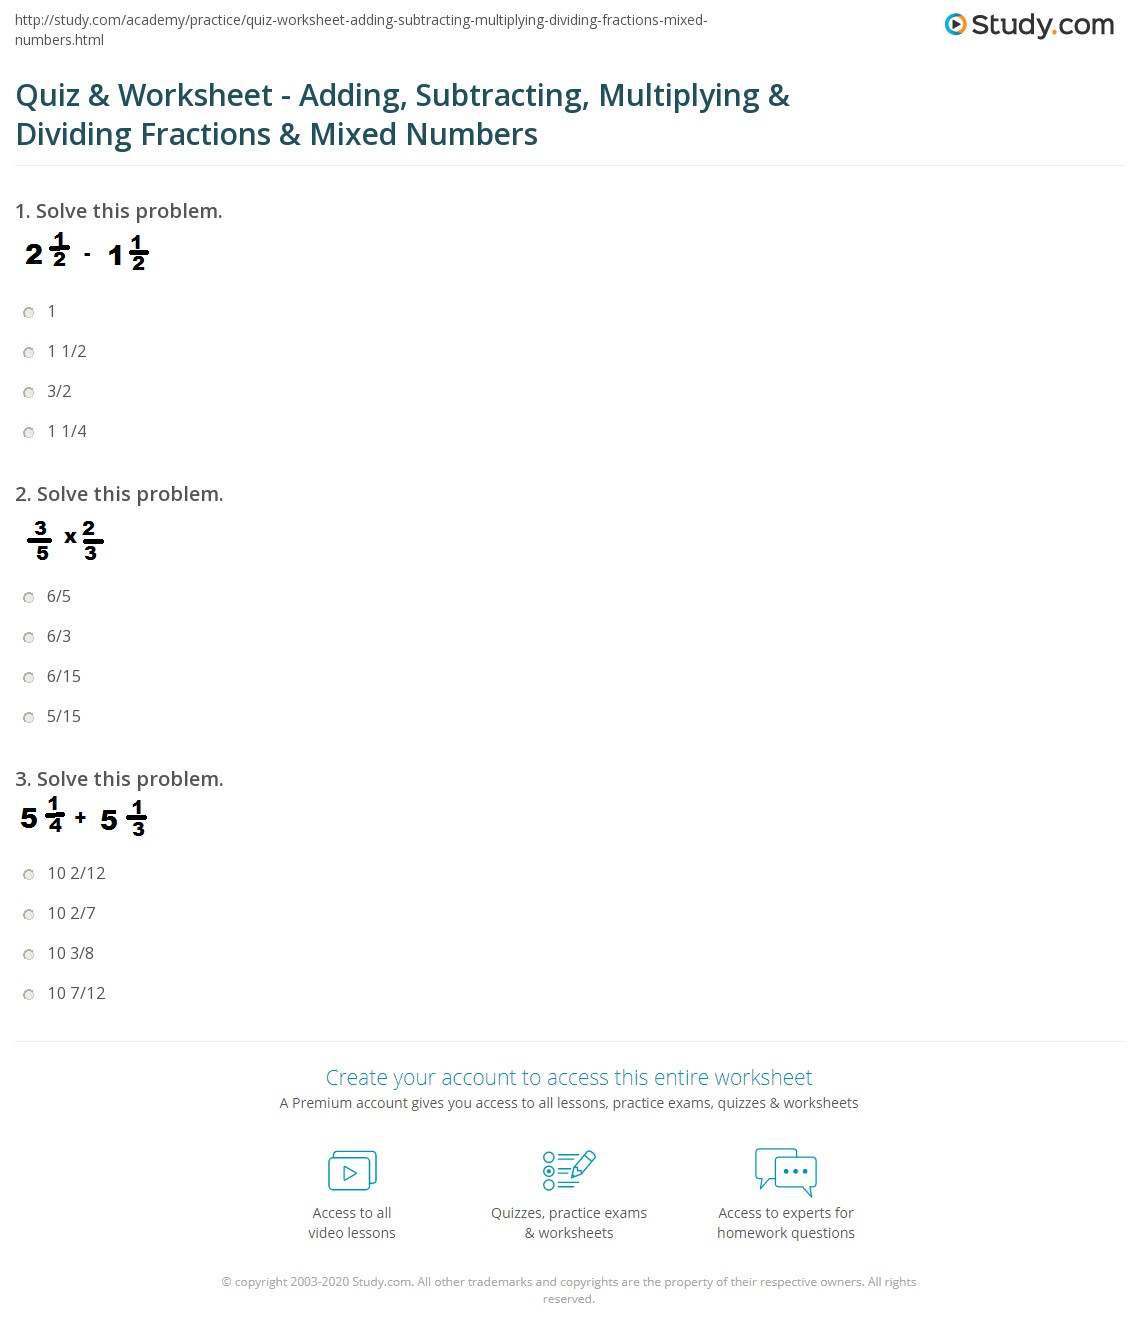 Quiz and Worksheet Adding Subtracting Multiplying and Dividing – Adding Subtracting Multiplying and Dividing Fractions Worksheets